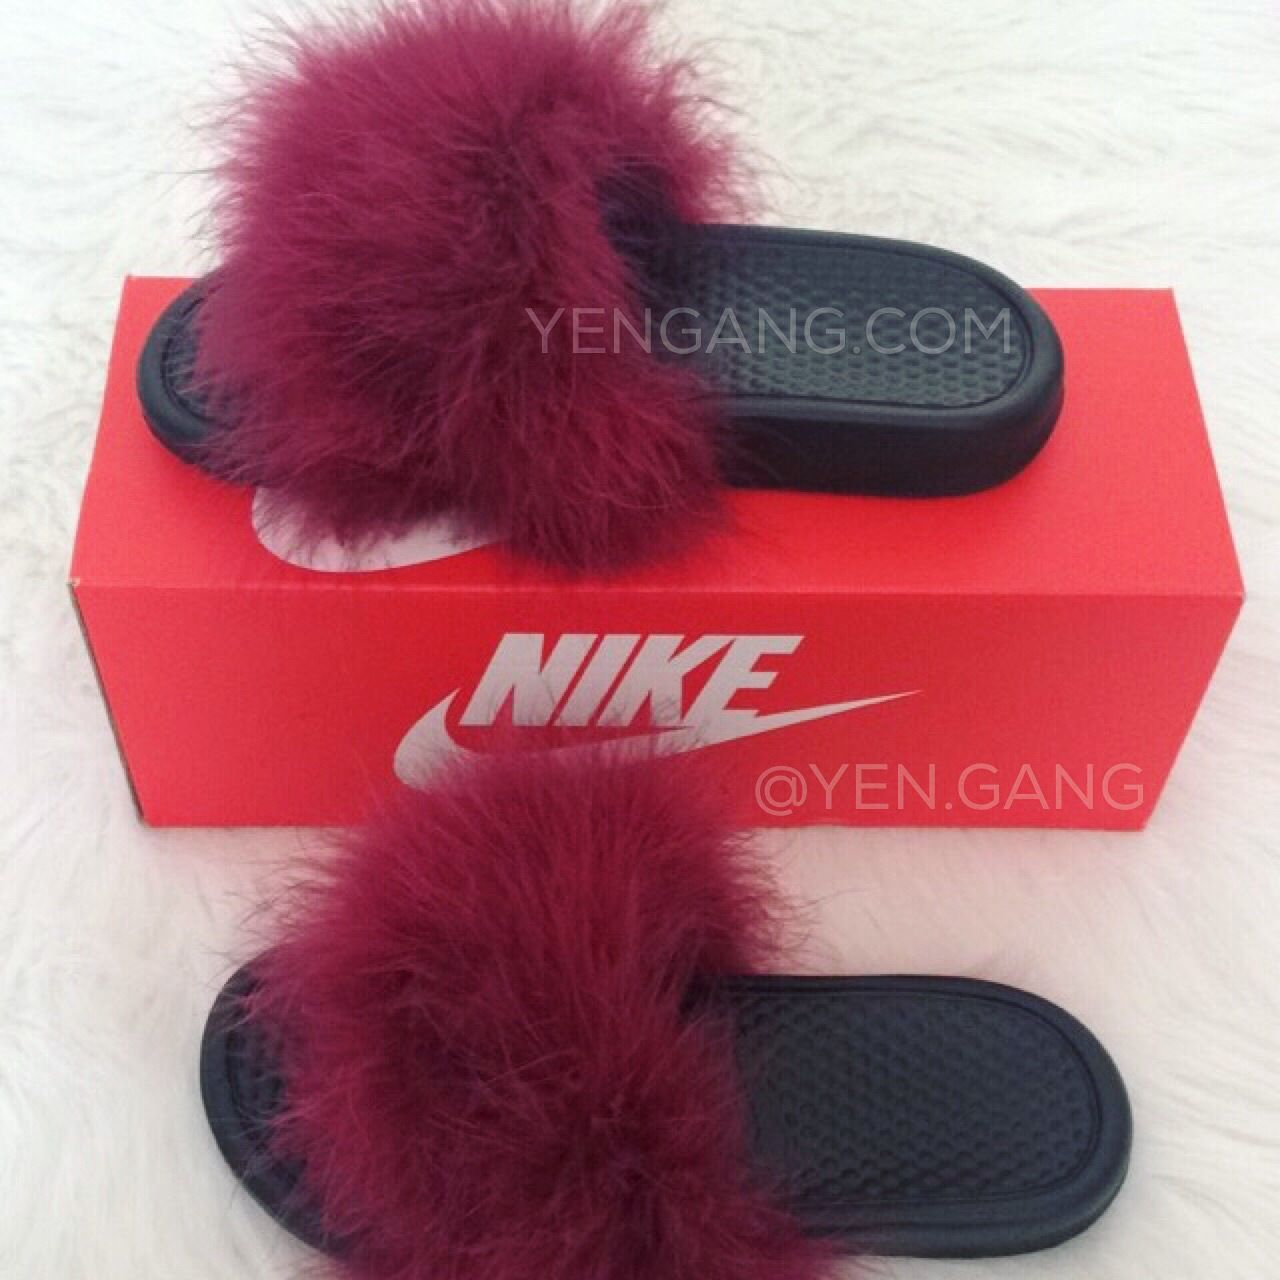 06a0604a847 Image of Fur Nike Slides